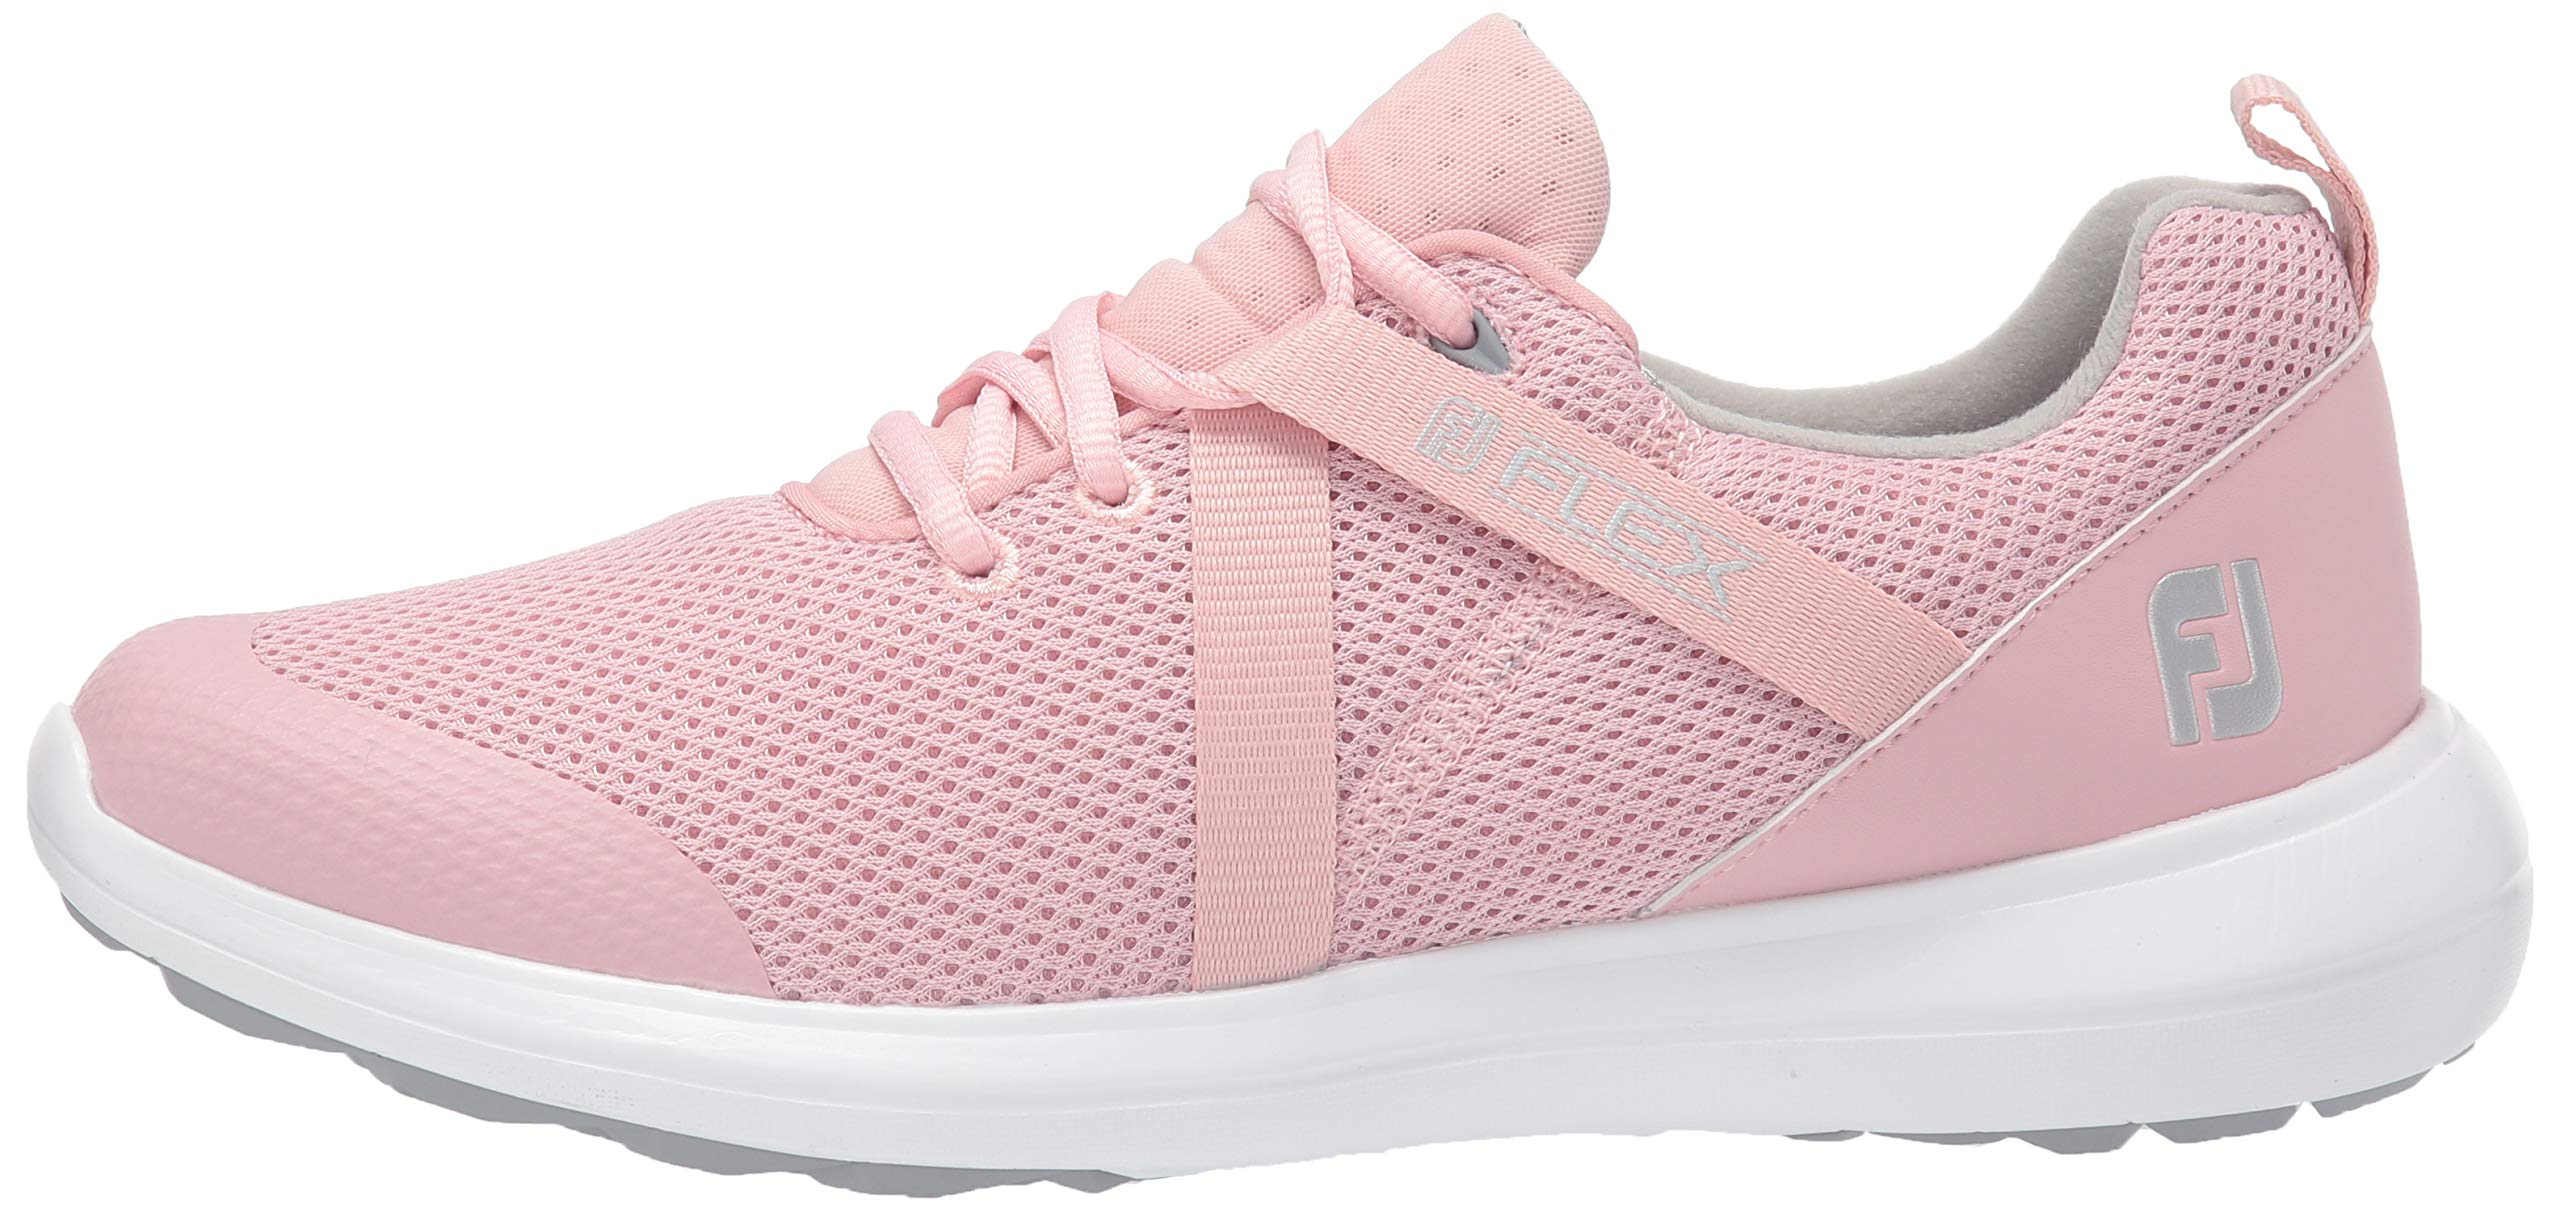 FootJoy Women's Fj Flex Golf Shoes